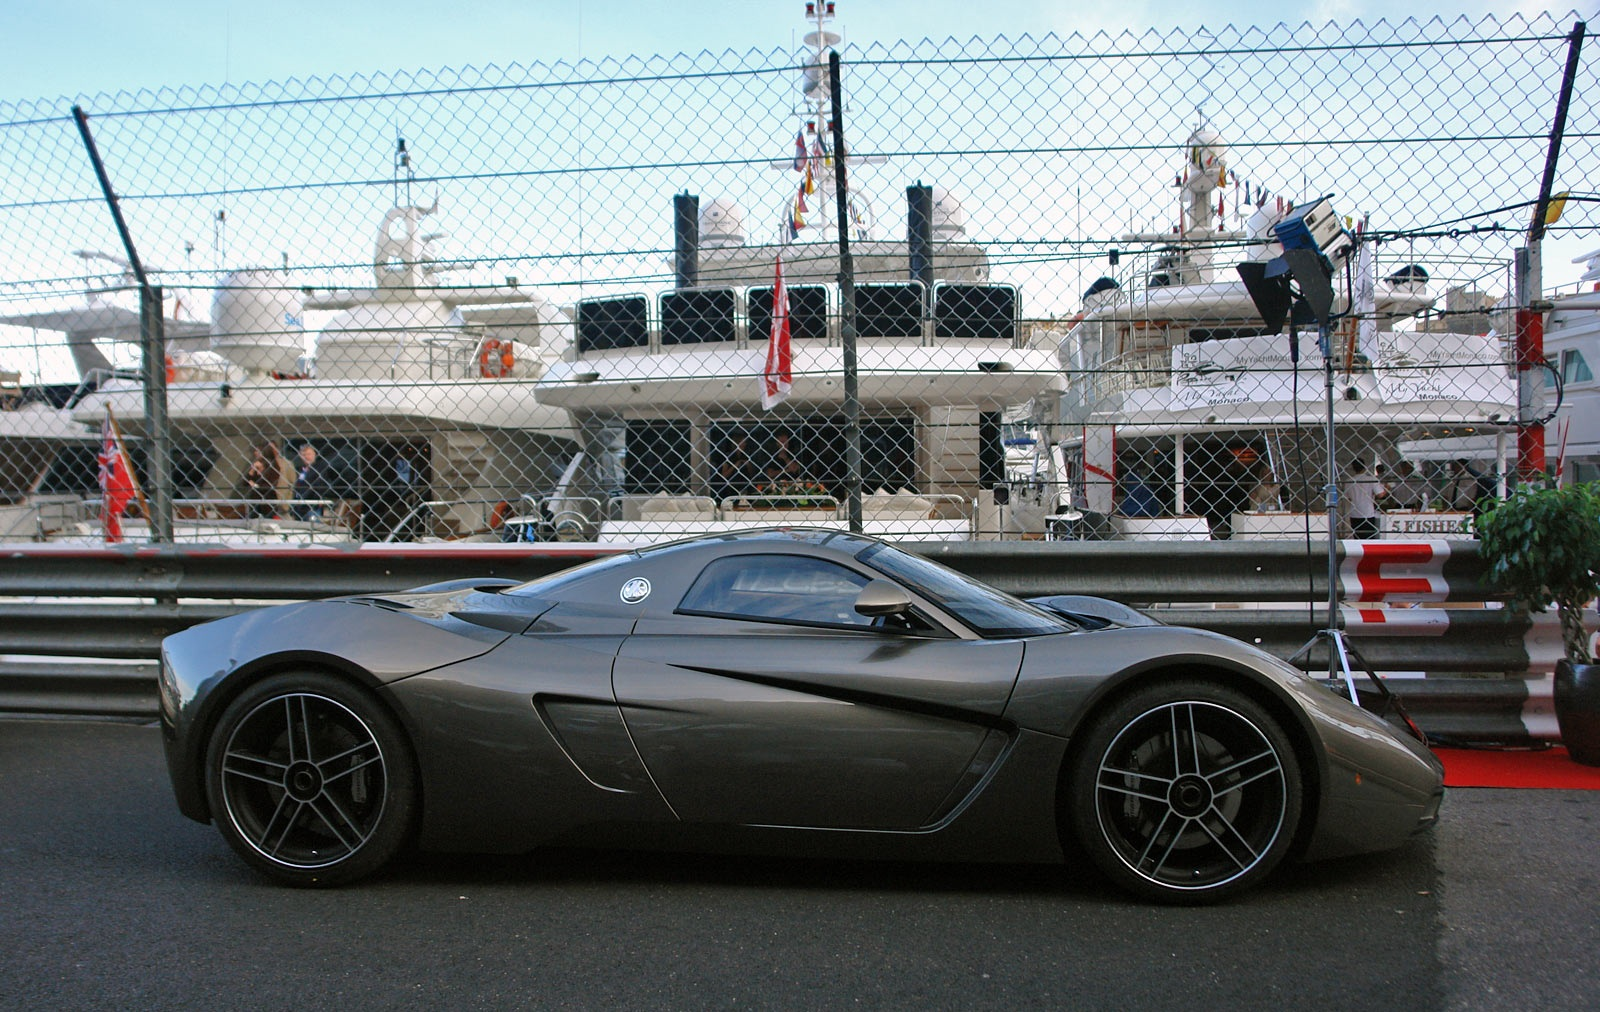 marussia b1 hd wallpapers high definition free background